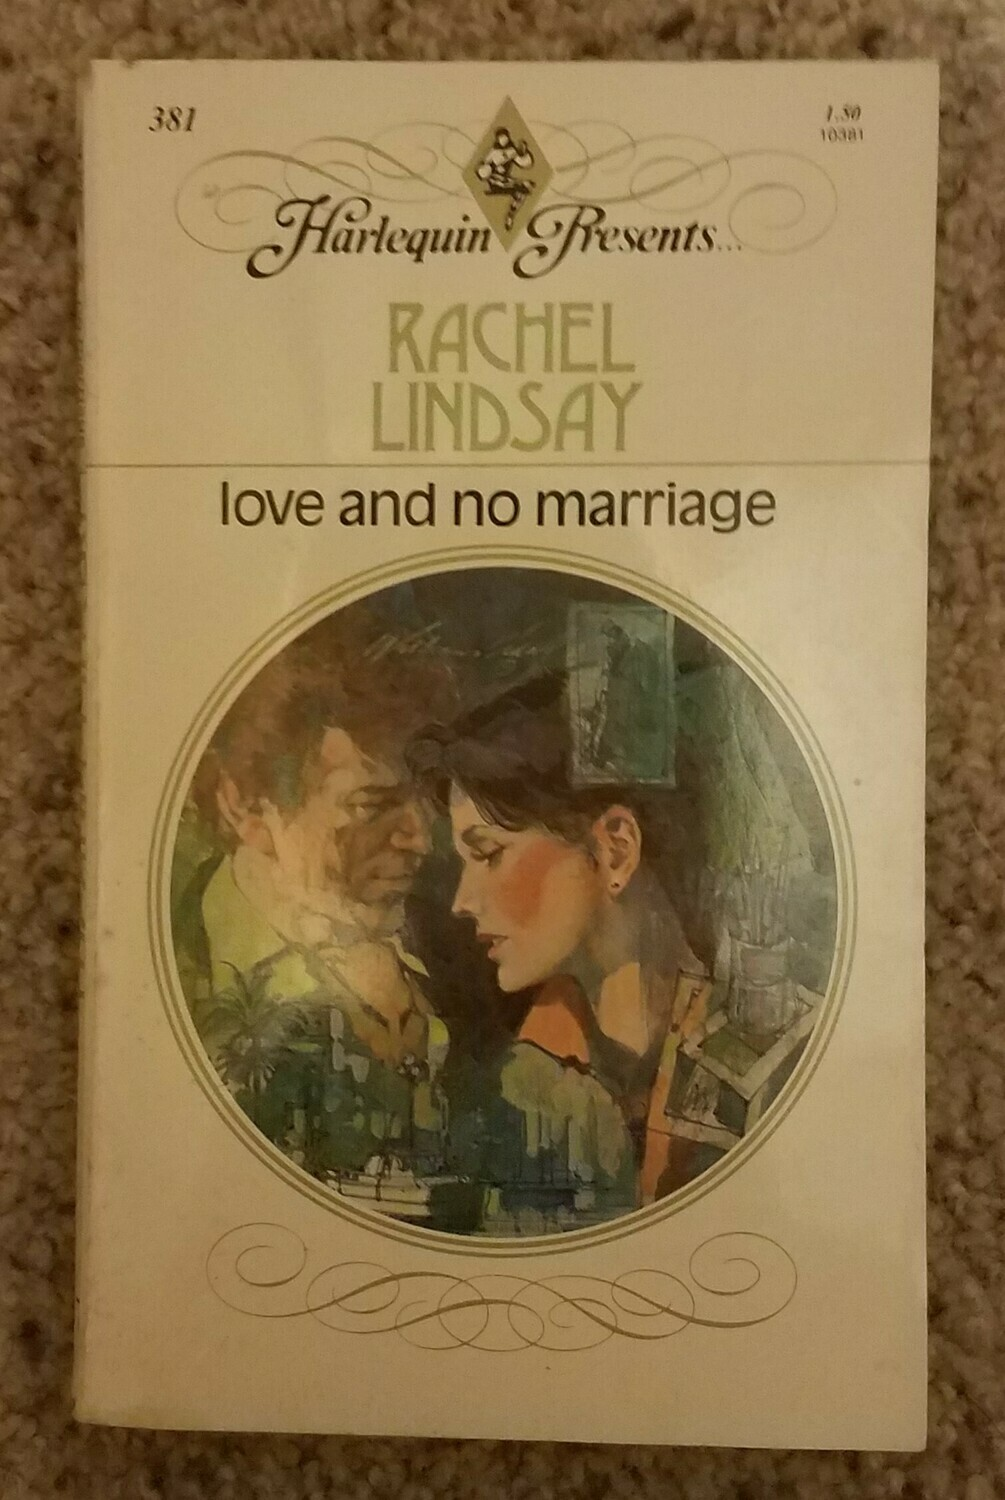 Love and No Marriage by Rachel Lindsay